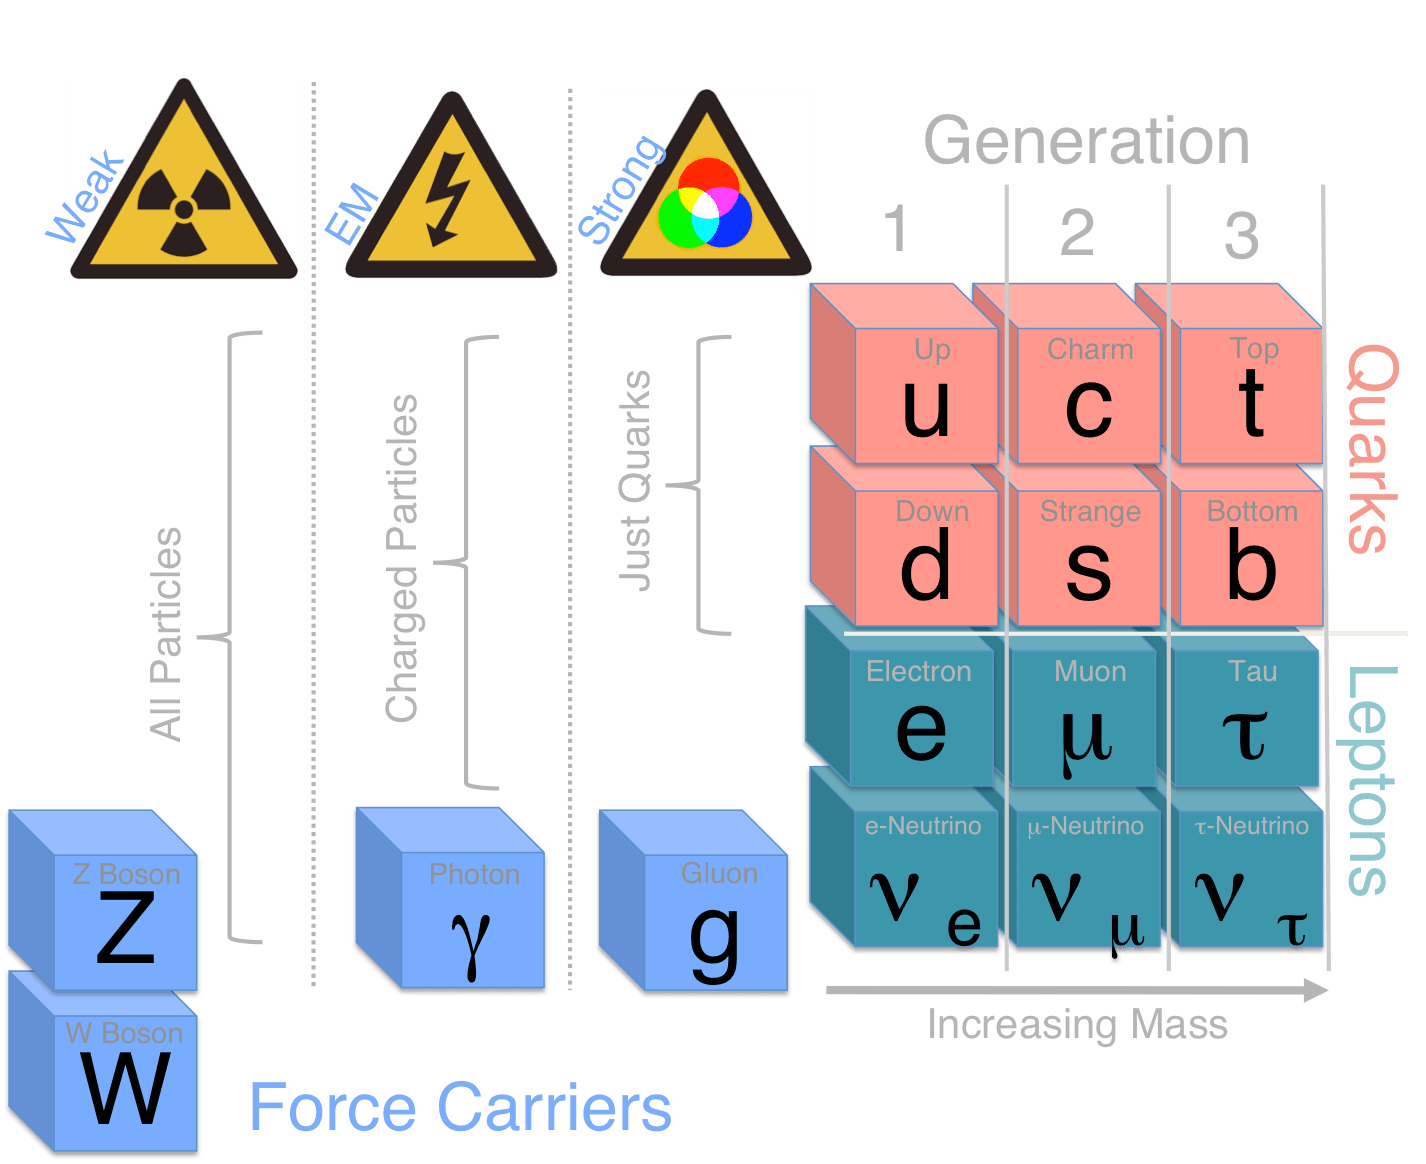 The Higgs Field According To The Standard Model